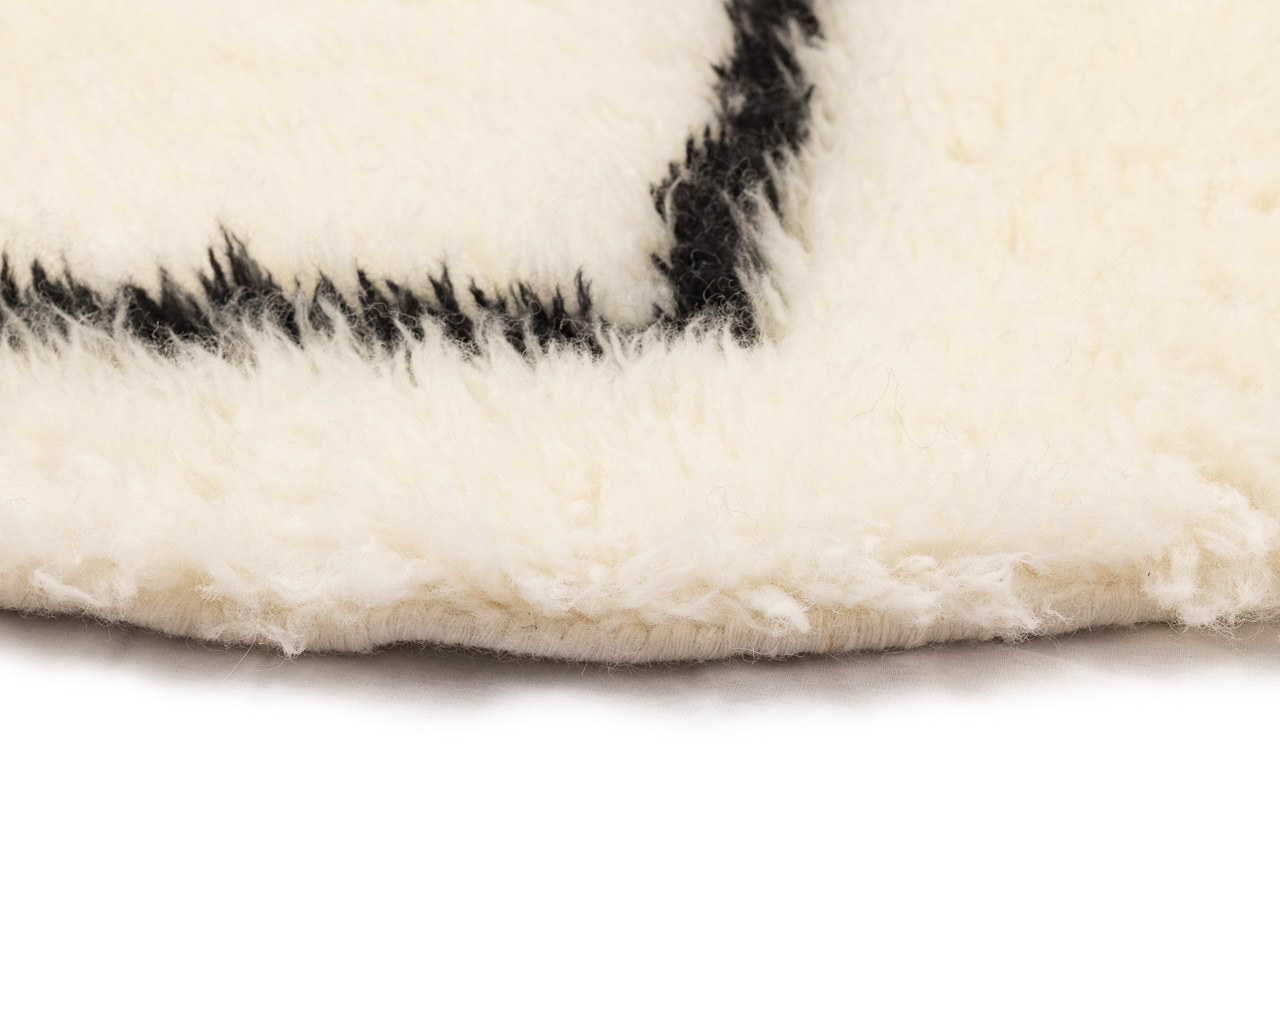 feathery round rug in white with black rhombus